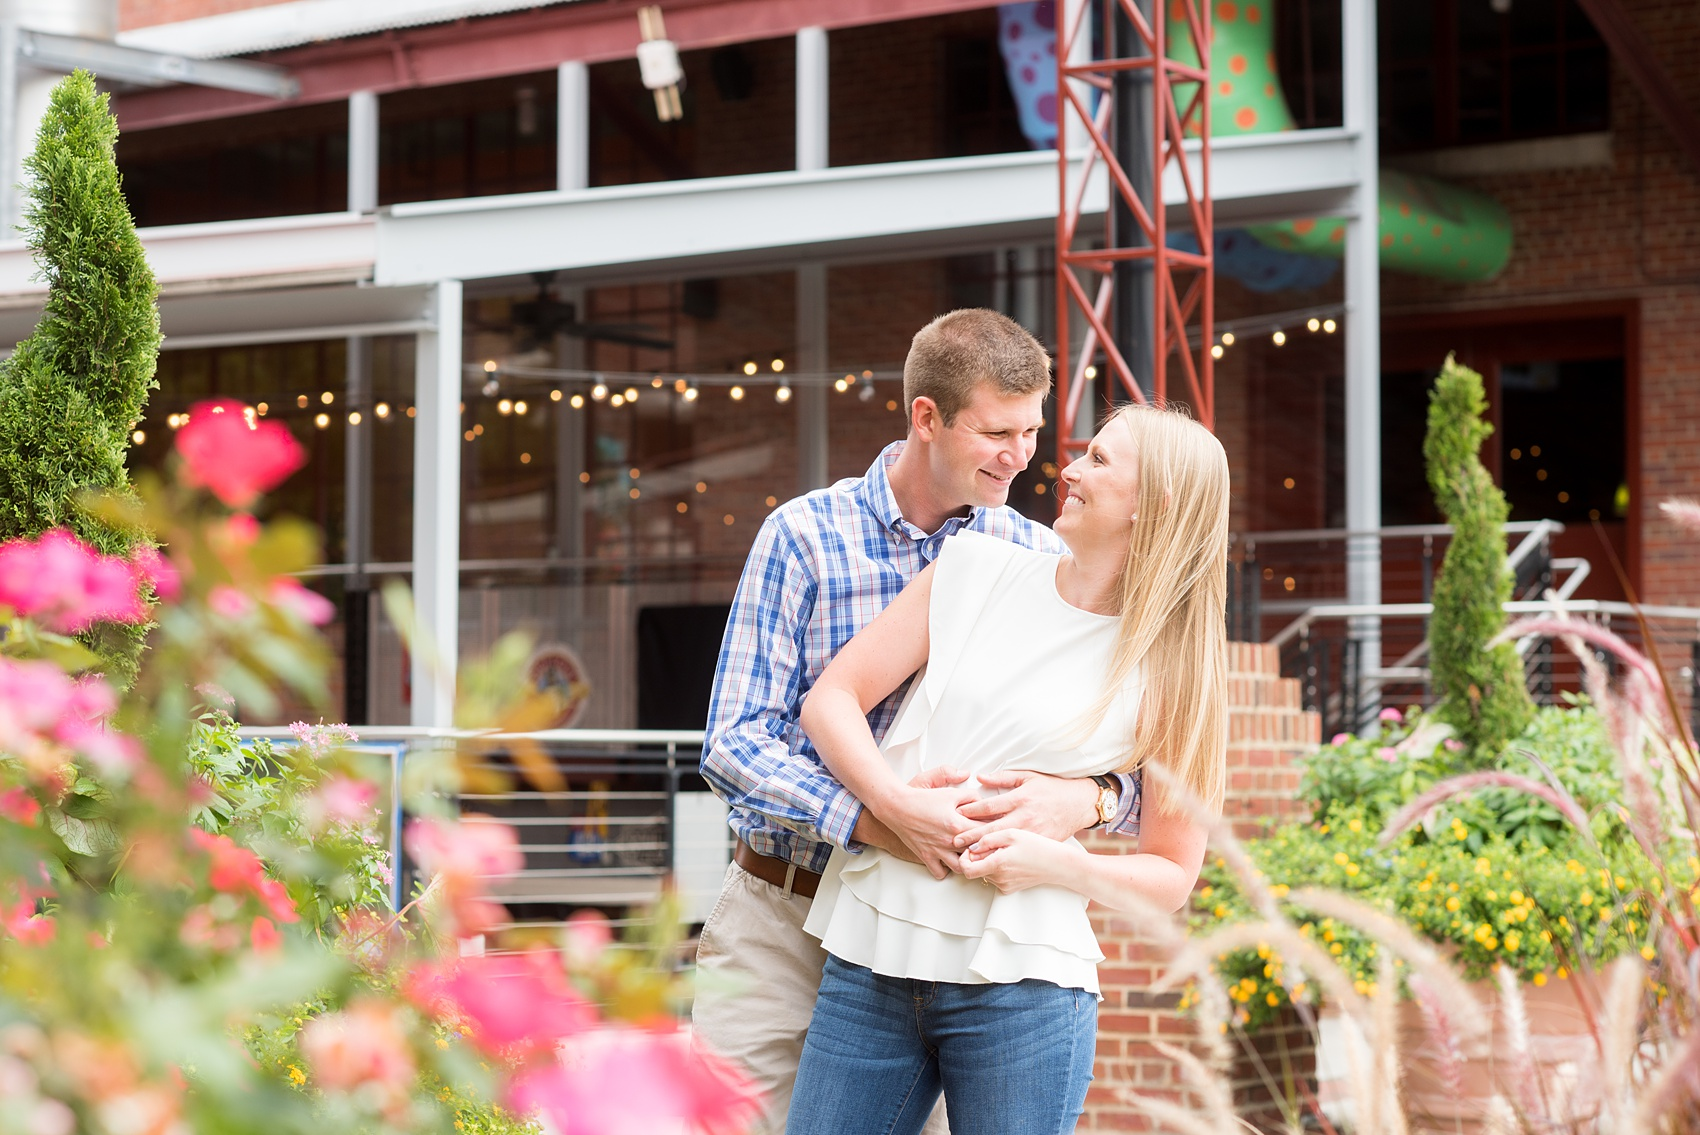 Mikkel Paige Photography images from an engagement session at Durham's American Tobacco Campus in North Carolina.